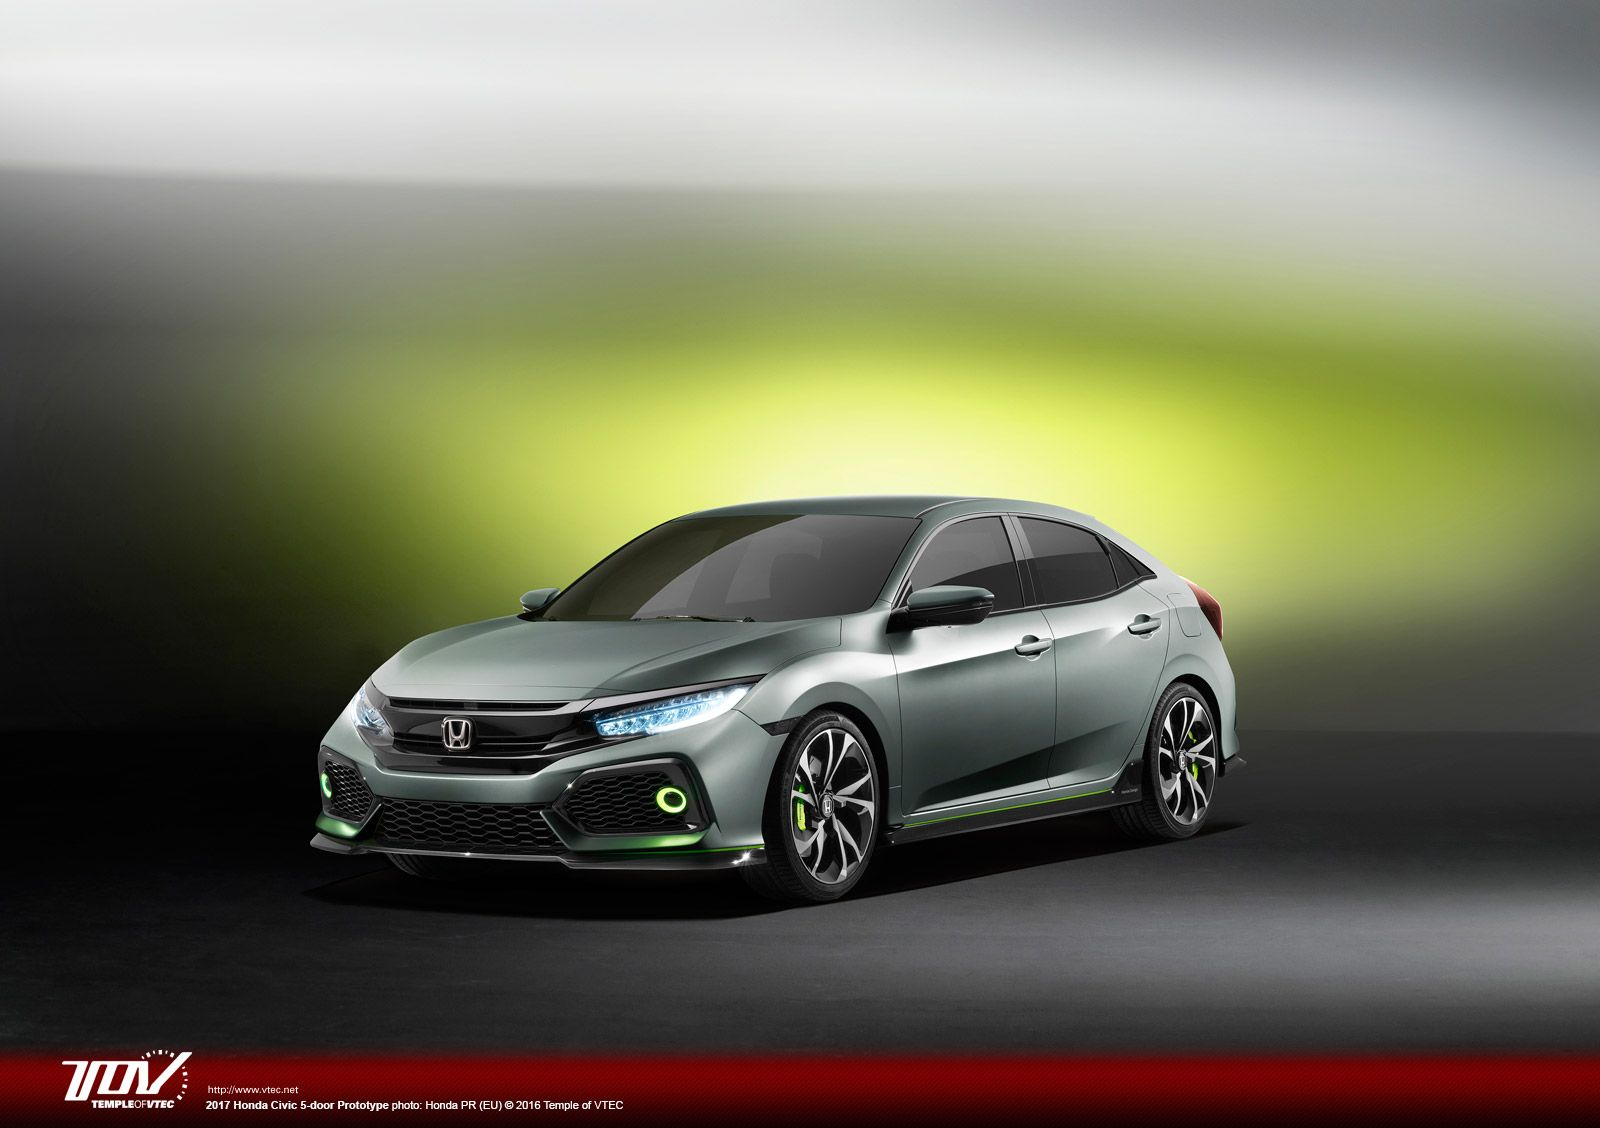 Temple Of Vtec >> Temple Of Vtec Rumors And News Civic 5 Door Concept